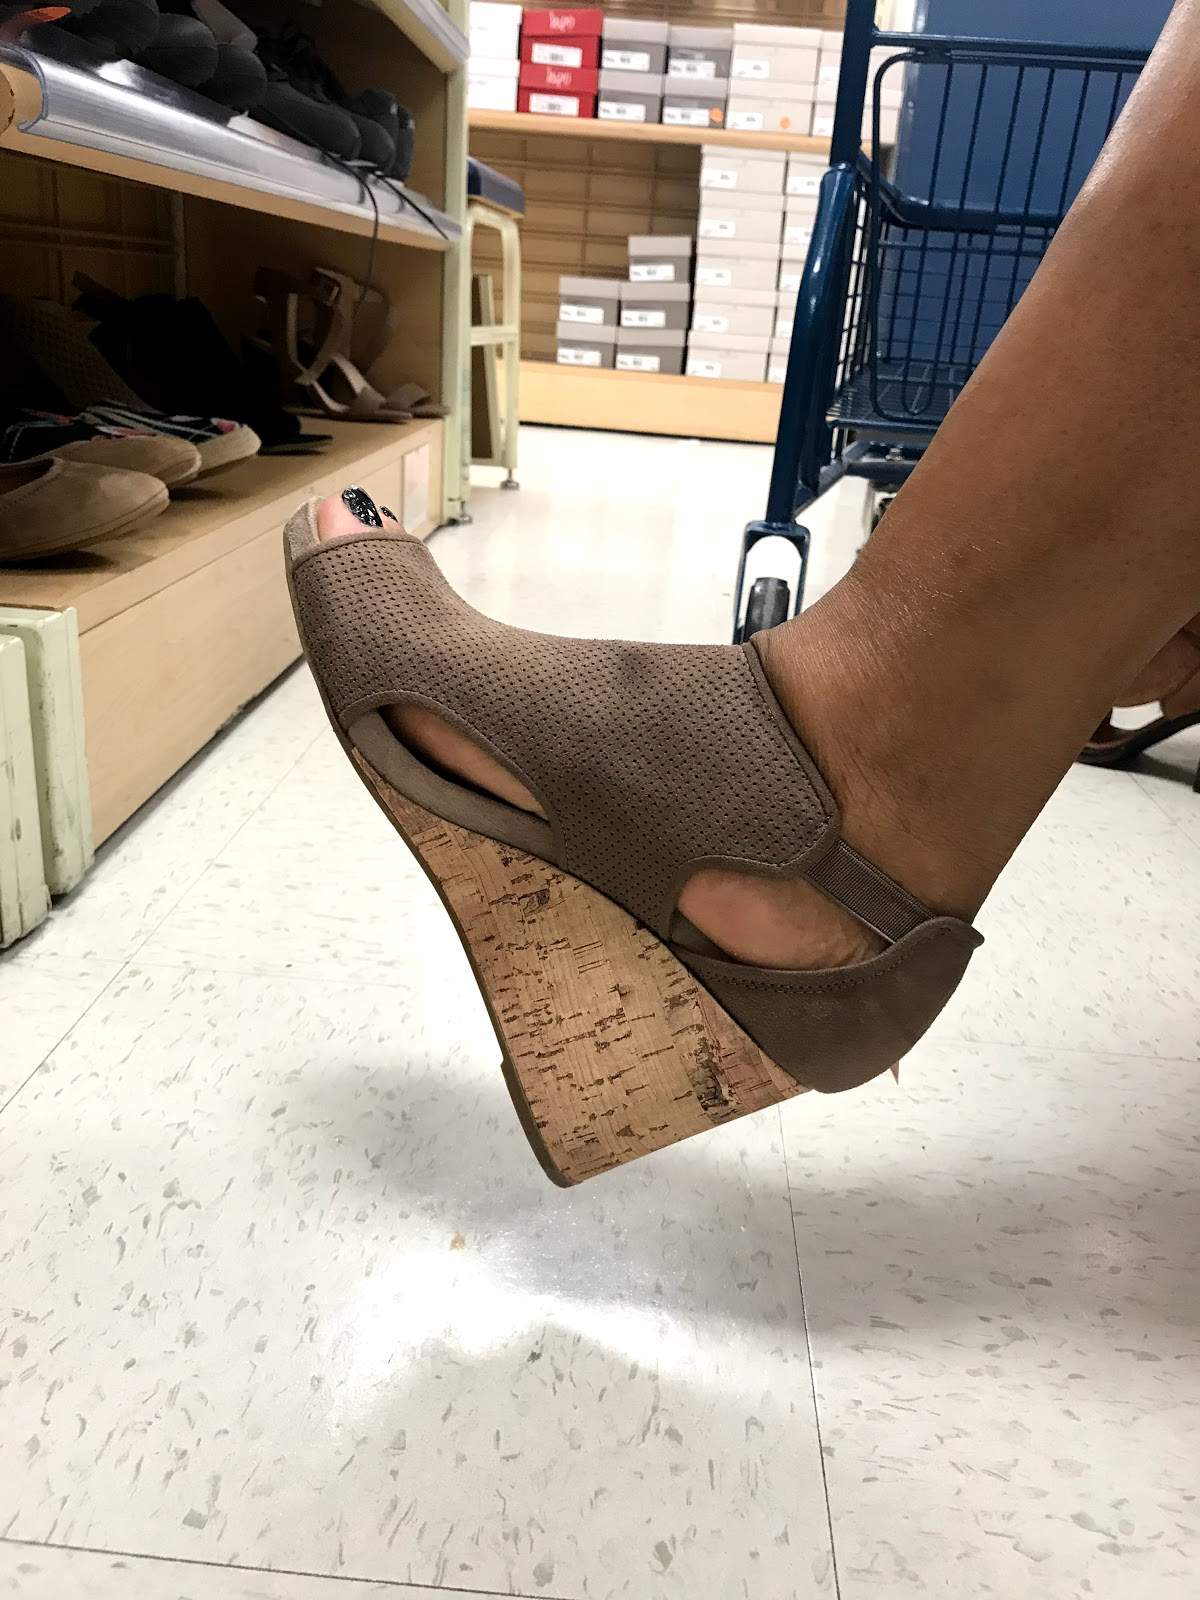 Image: tangie Bell Trying on shoes to buy from Marshall's store. Seen first on Bits and Babbles blog